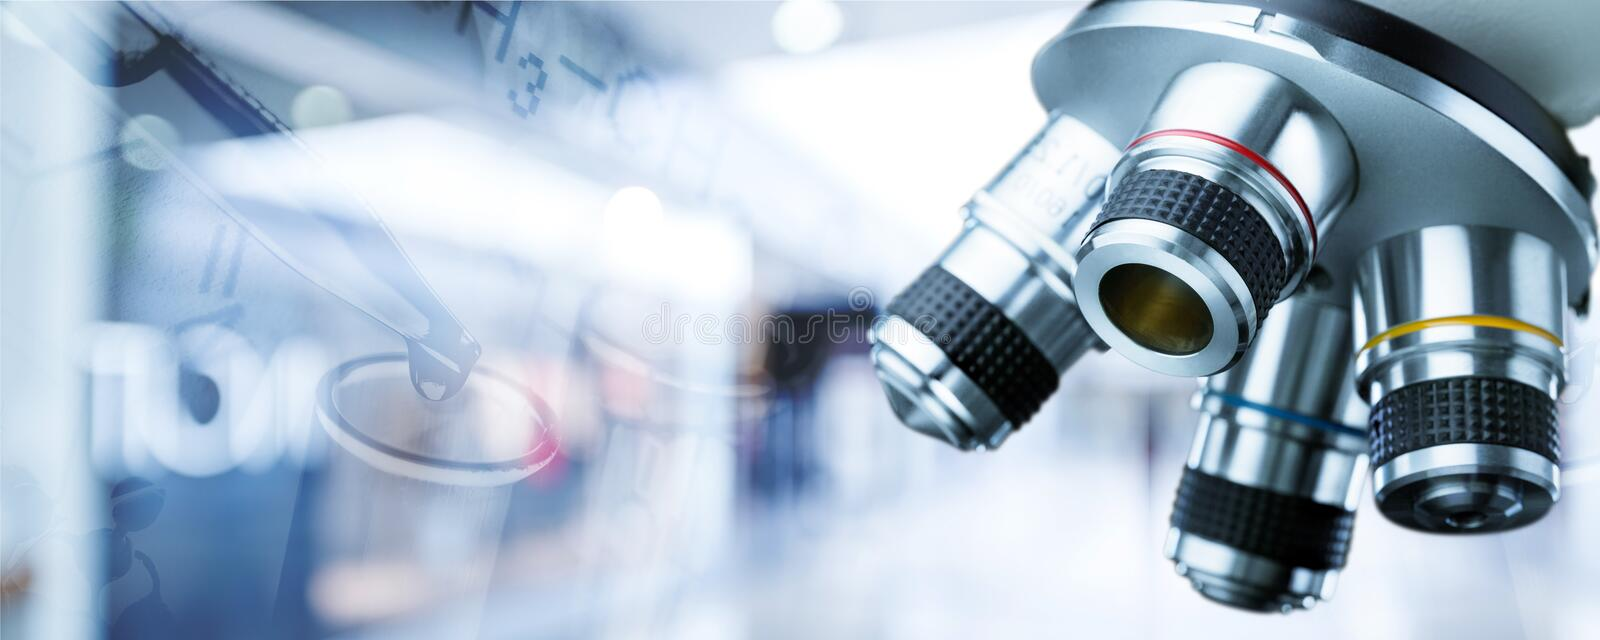 Background. Pharmaceutical research scientific banner abstract biotech stock photography